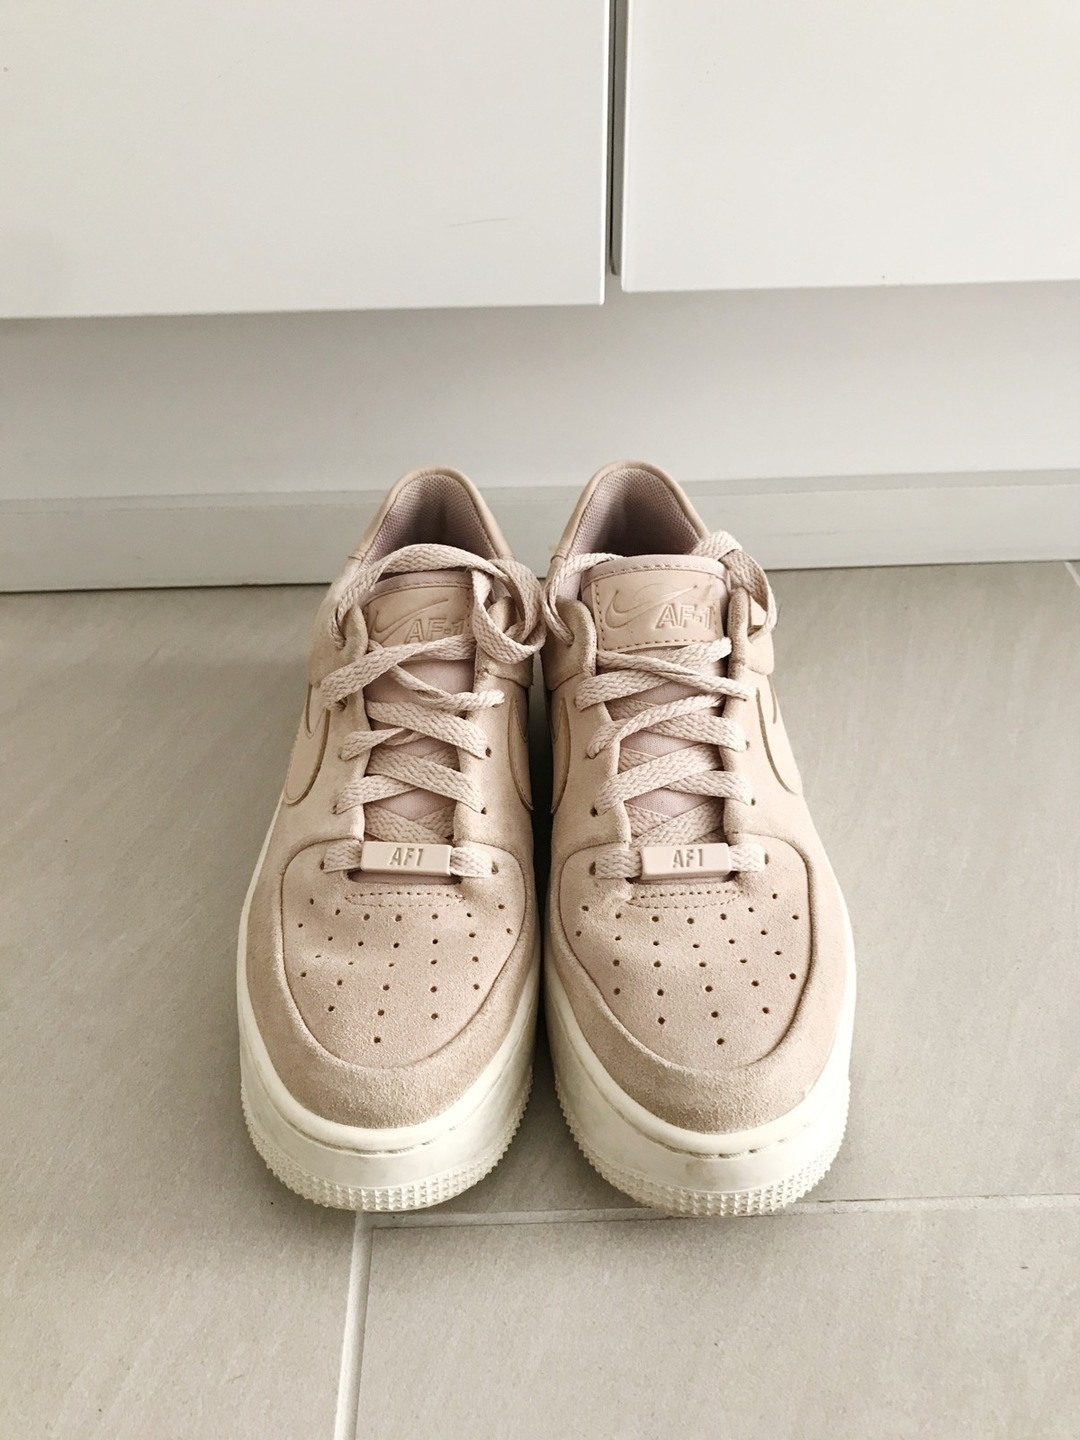 Women's sneakers - NIKE photo 2